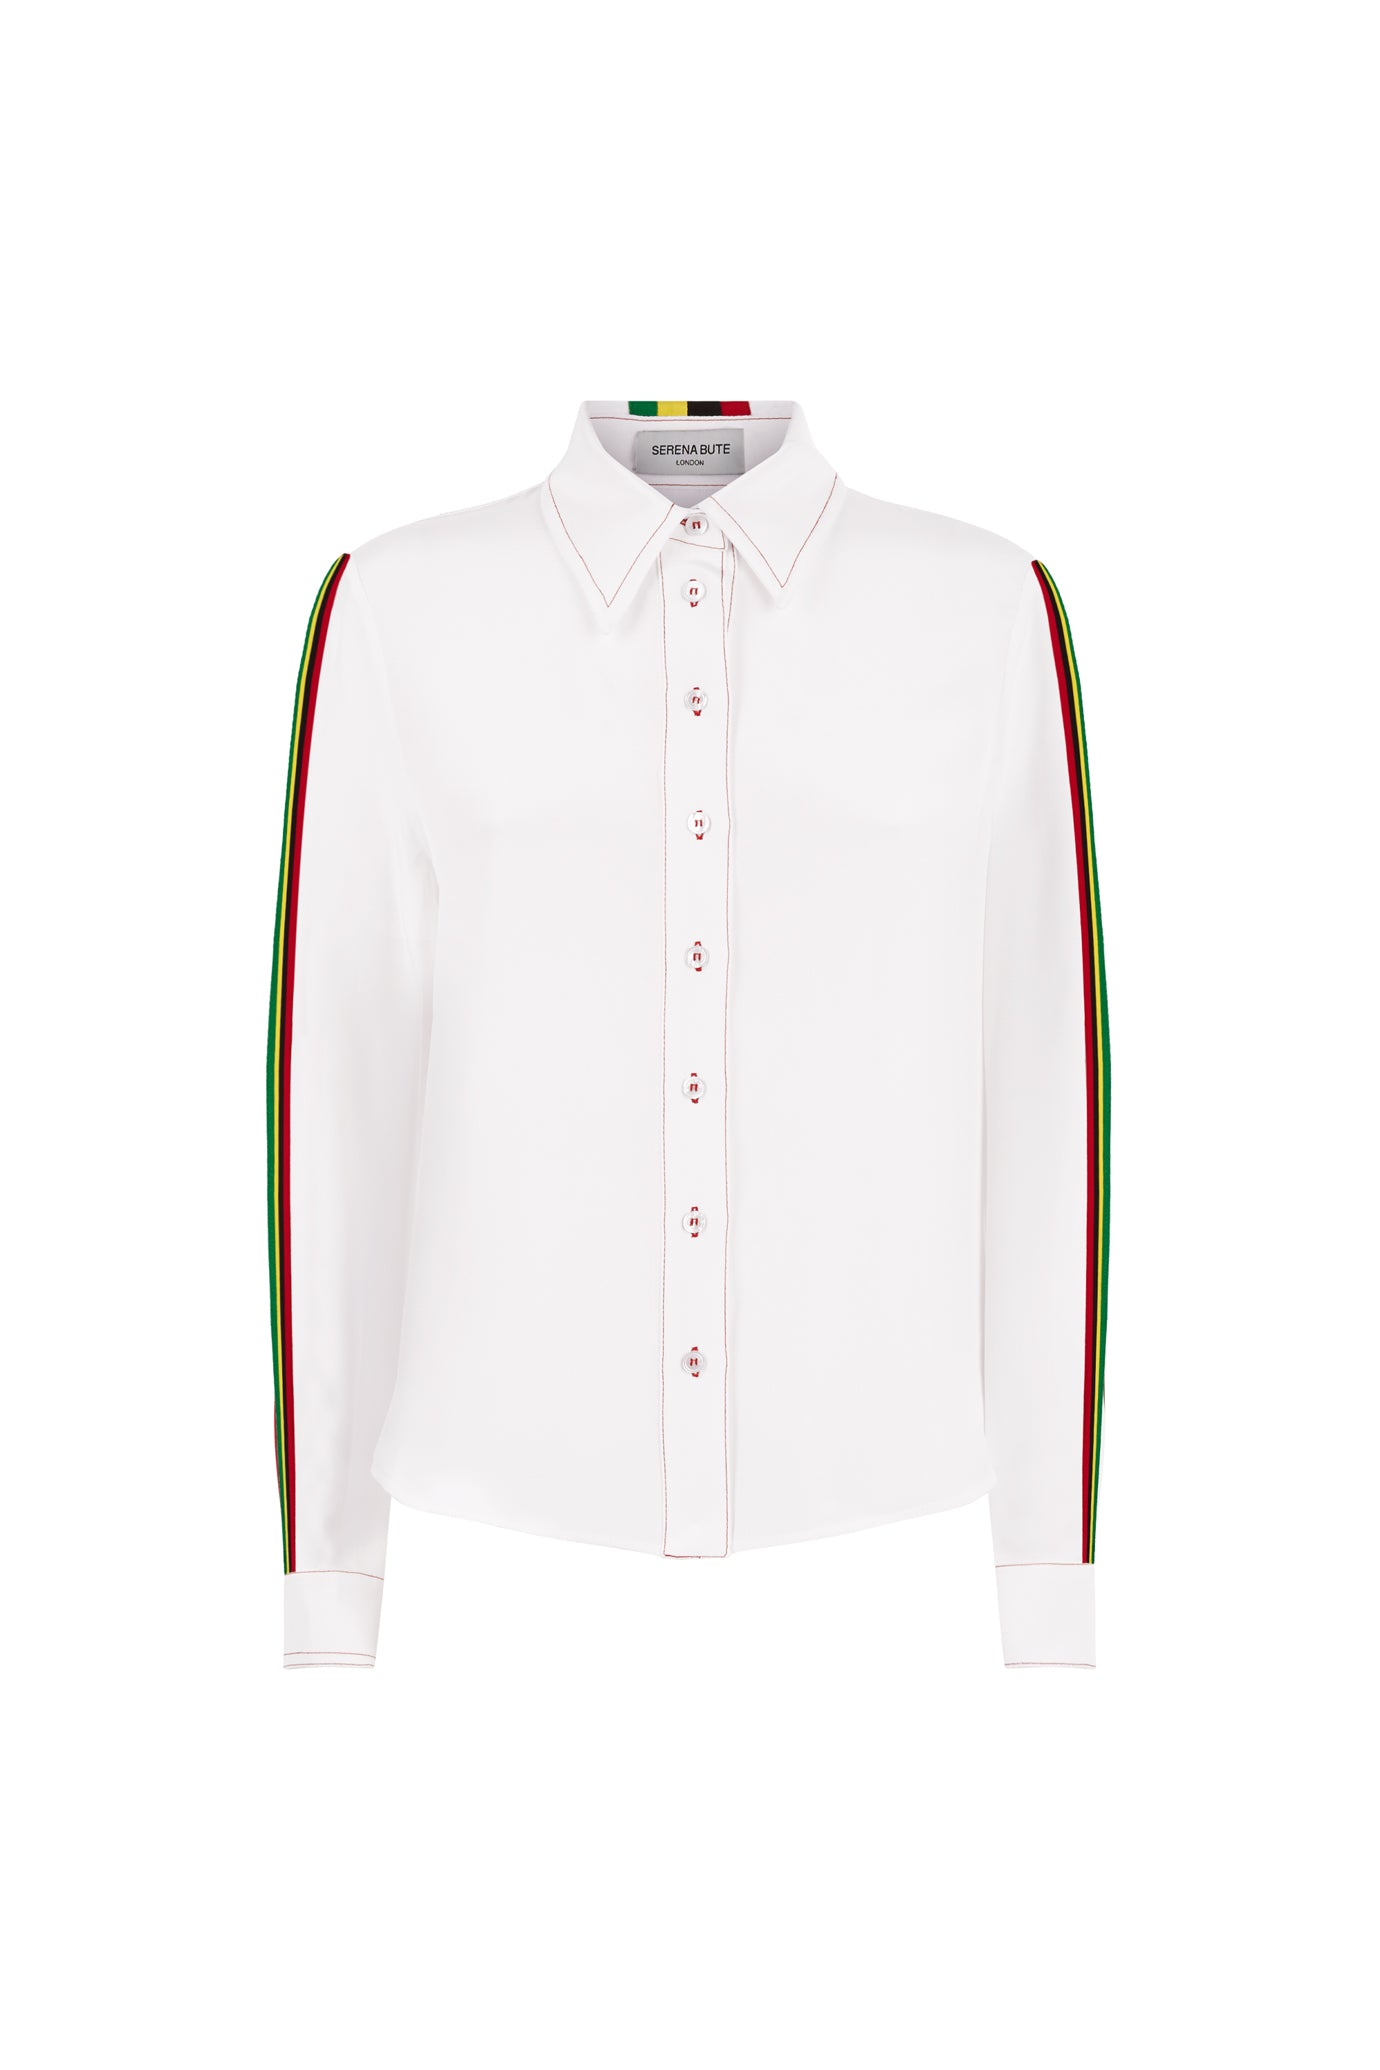 The Serena Shirt - White & Rasta/Jamaican - SERENA BUTE